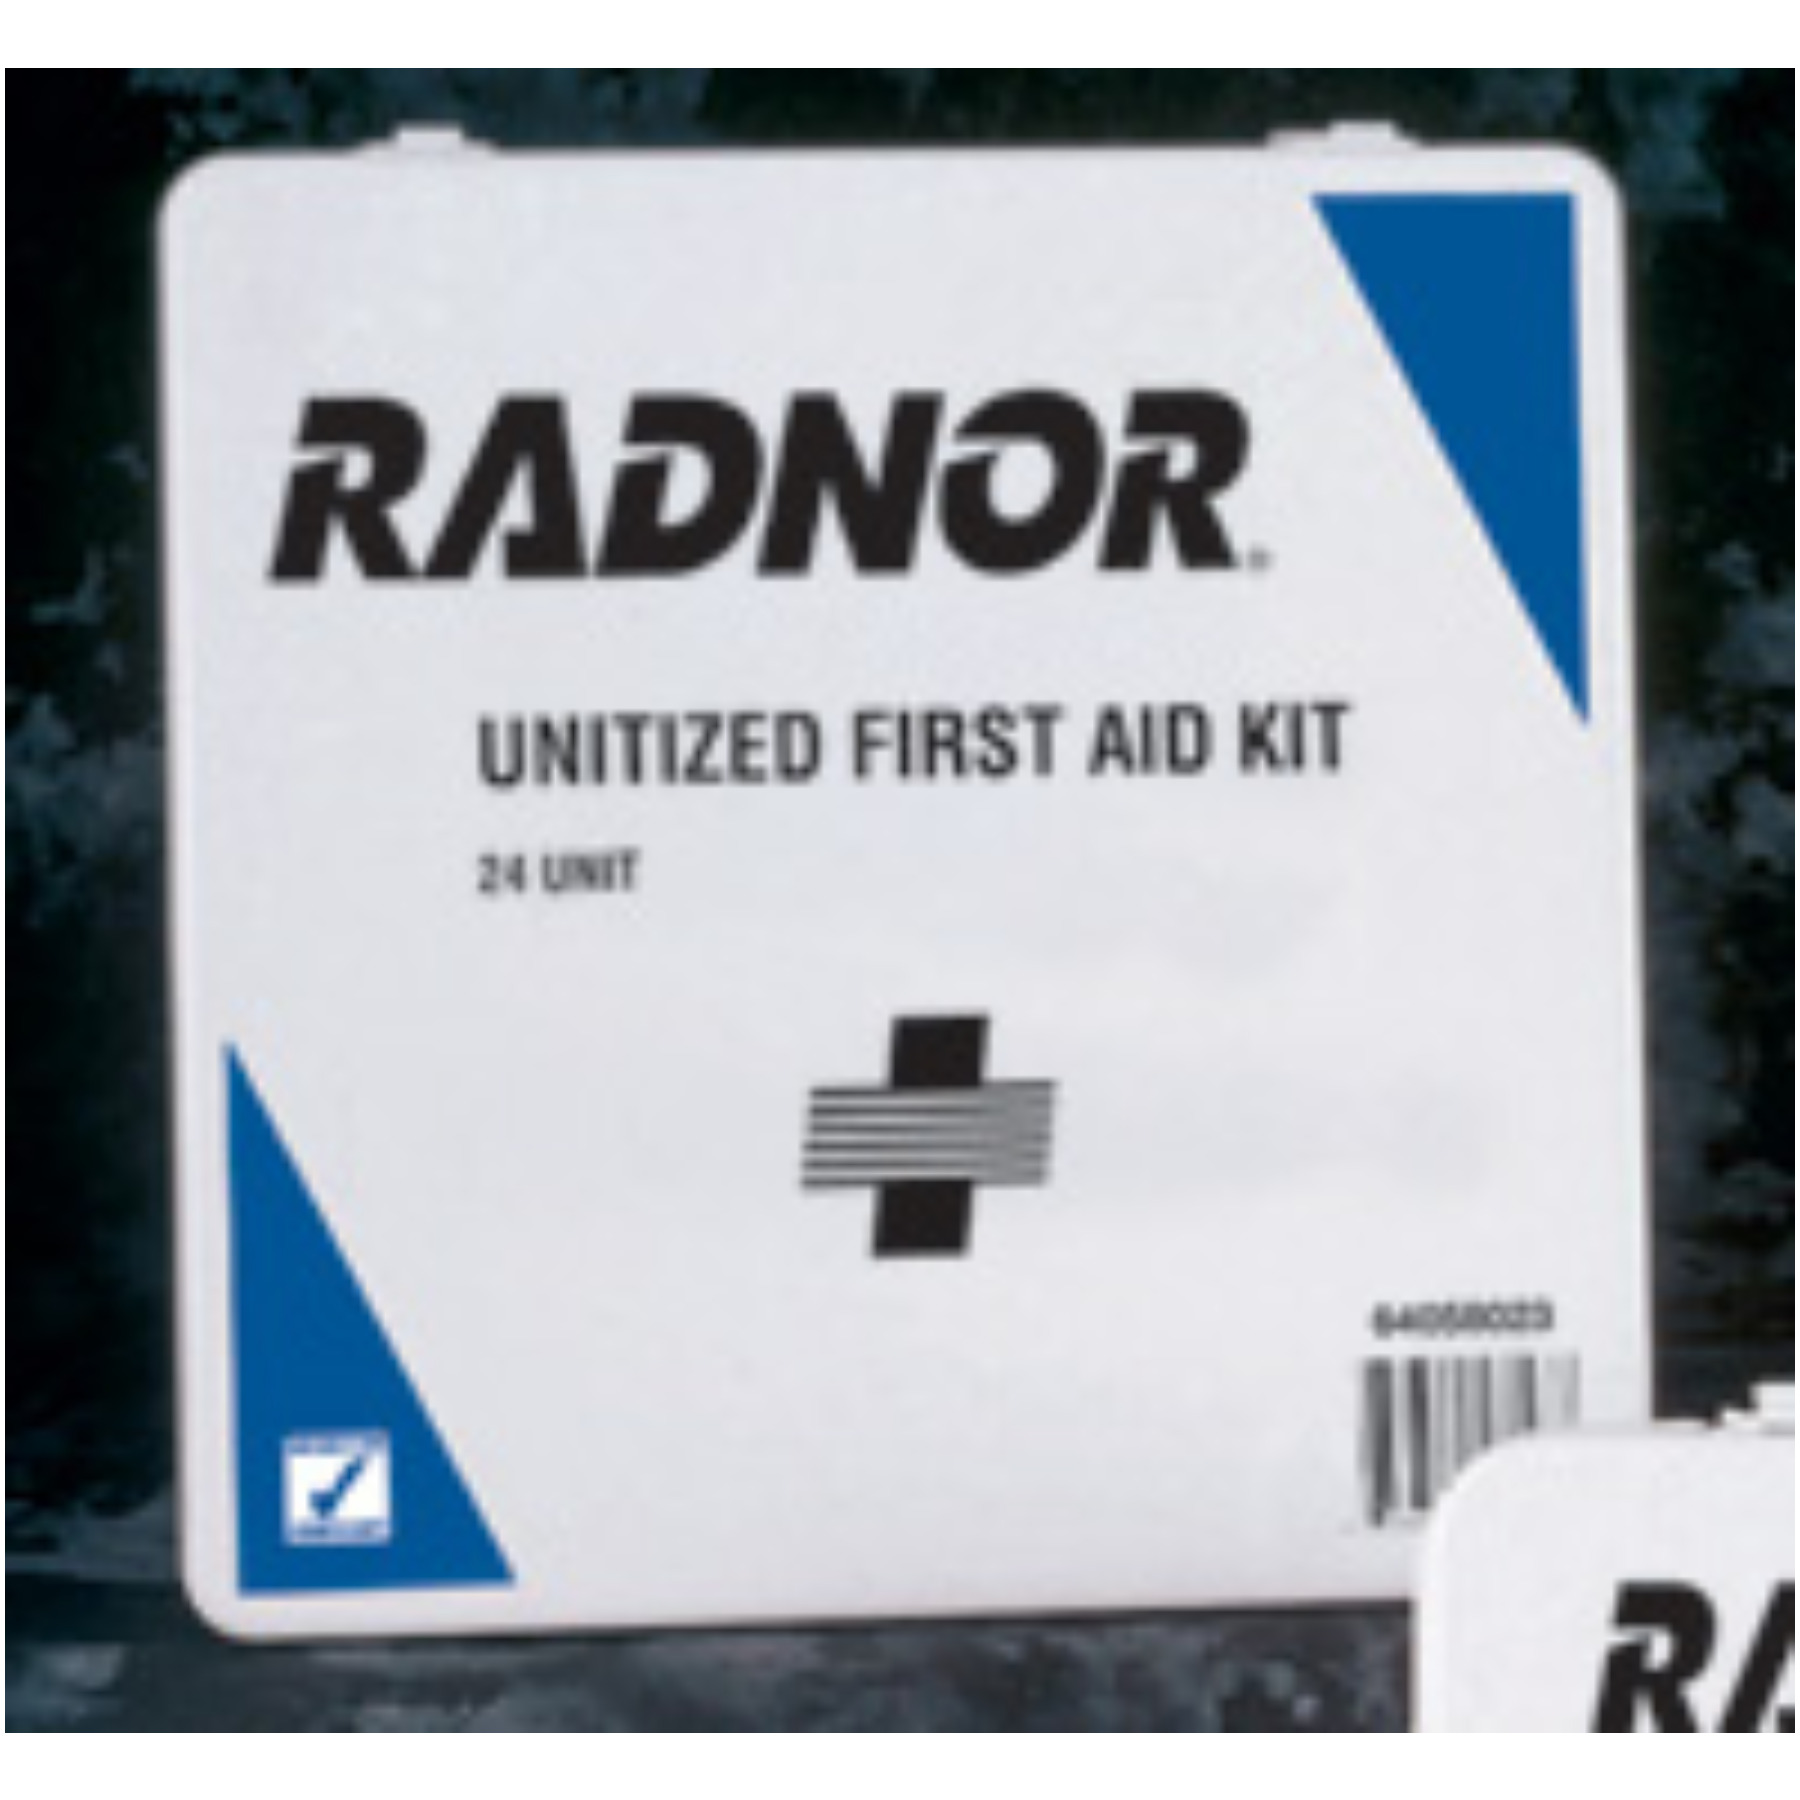 Radnor+ 24 Person Unitized First Aid Kit In Plastic Case